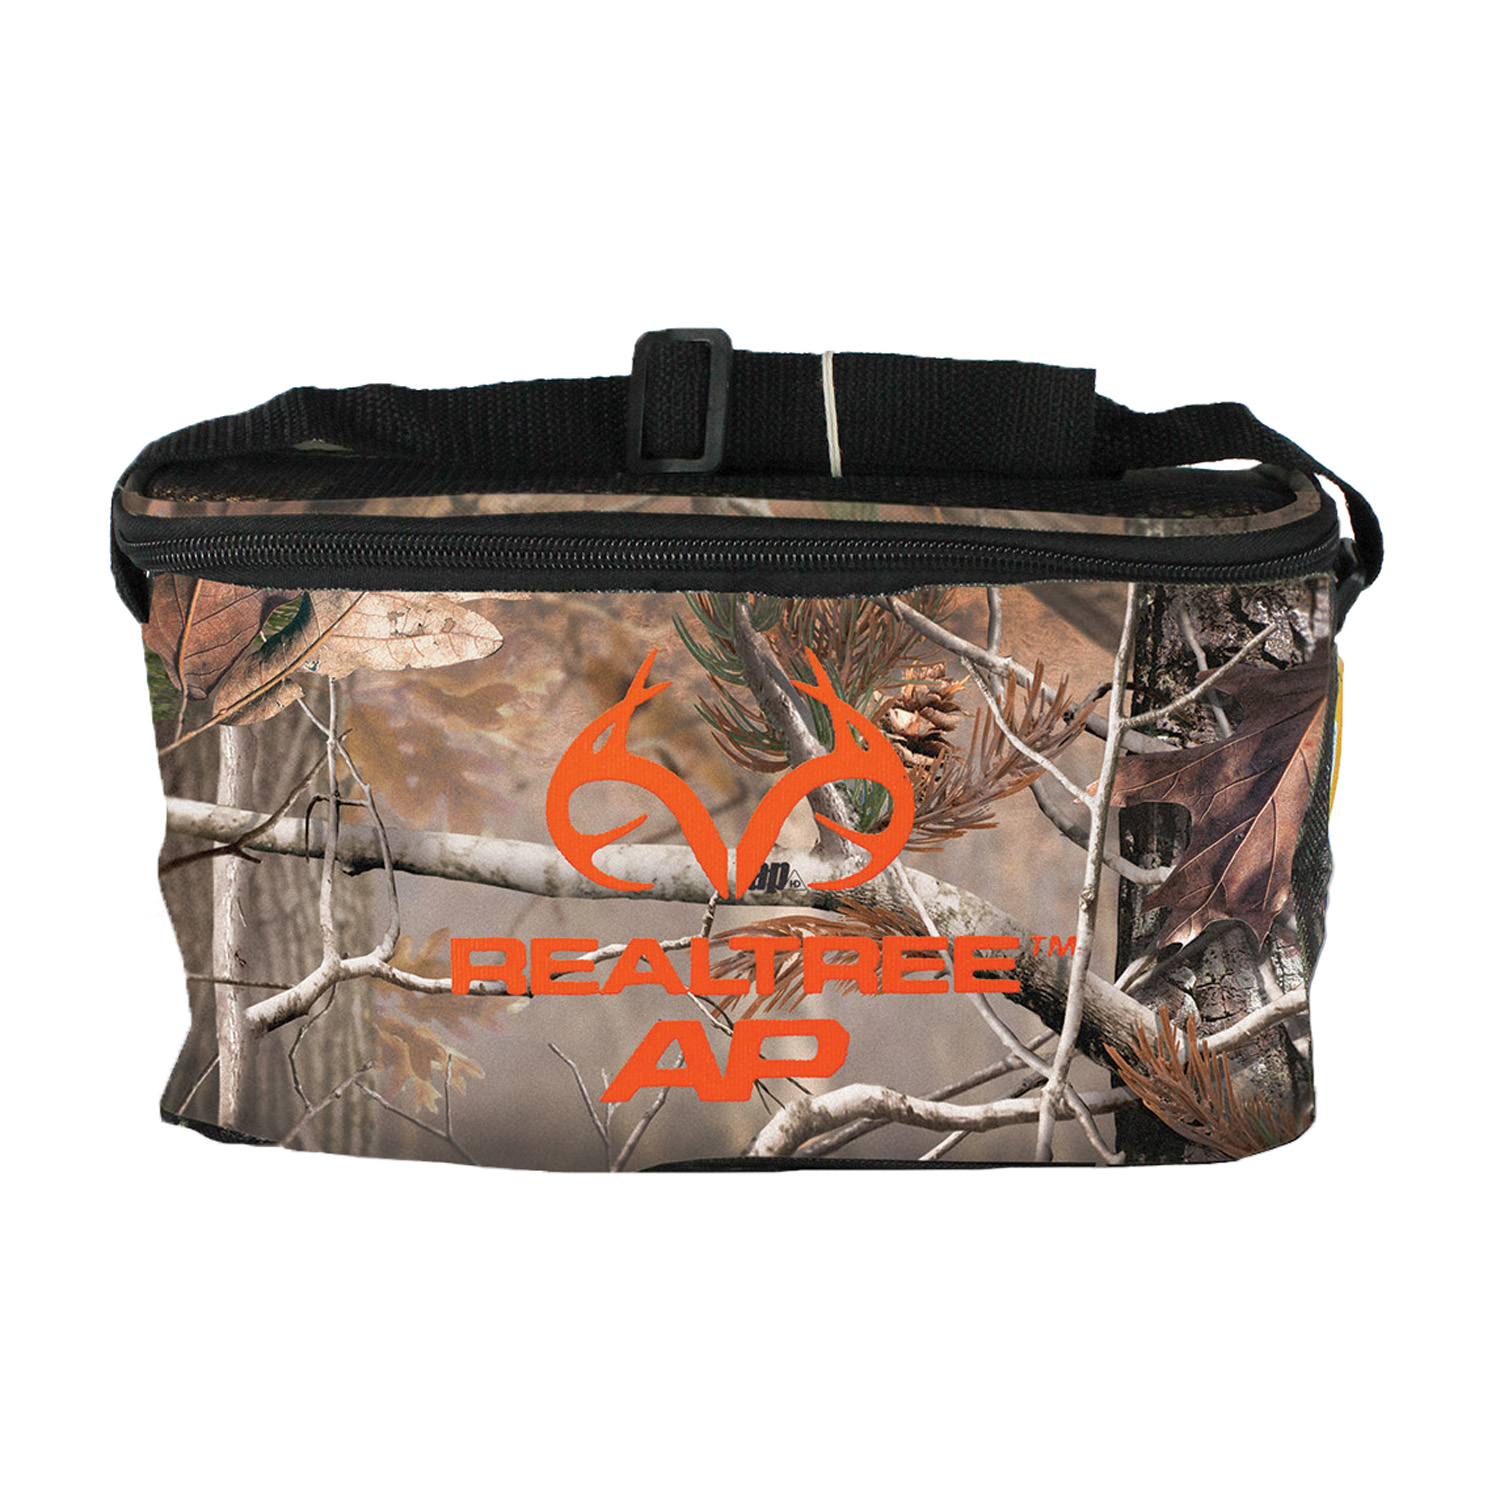 Image of AES Soft Side Cooler, Realtree AP, 6 Can